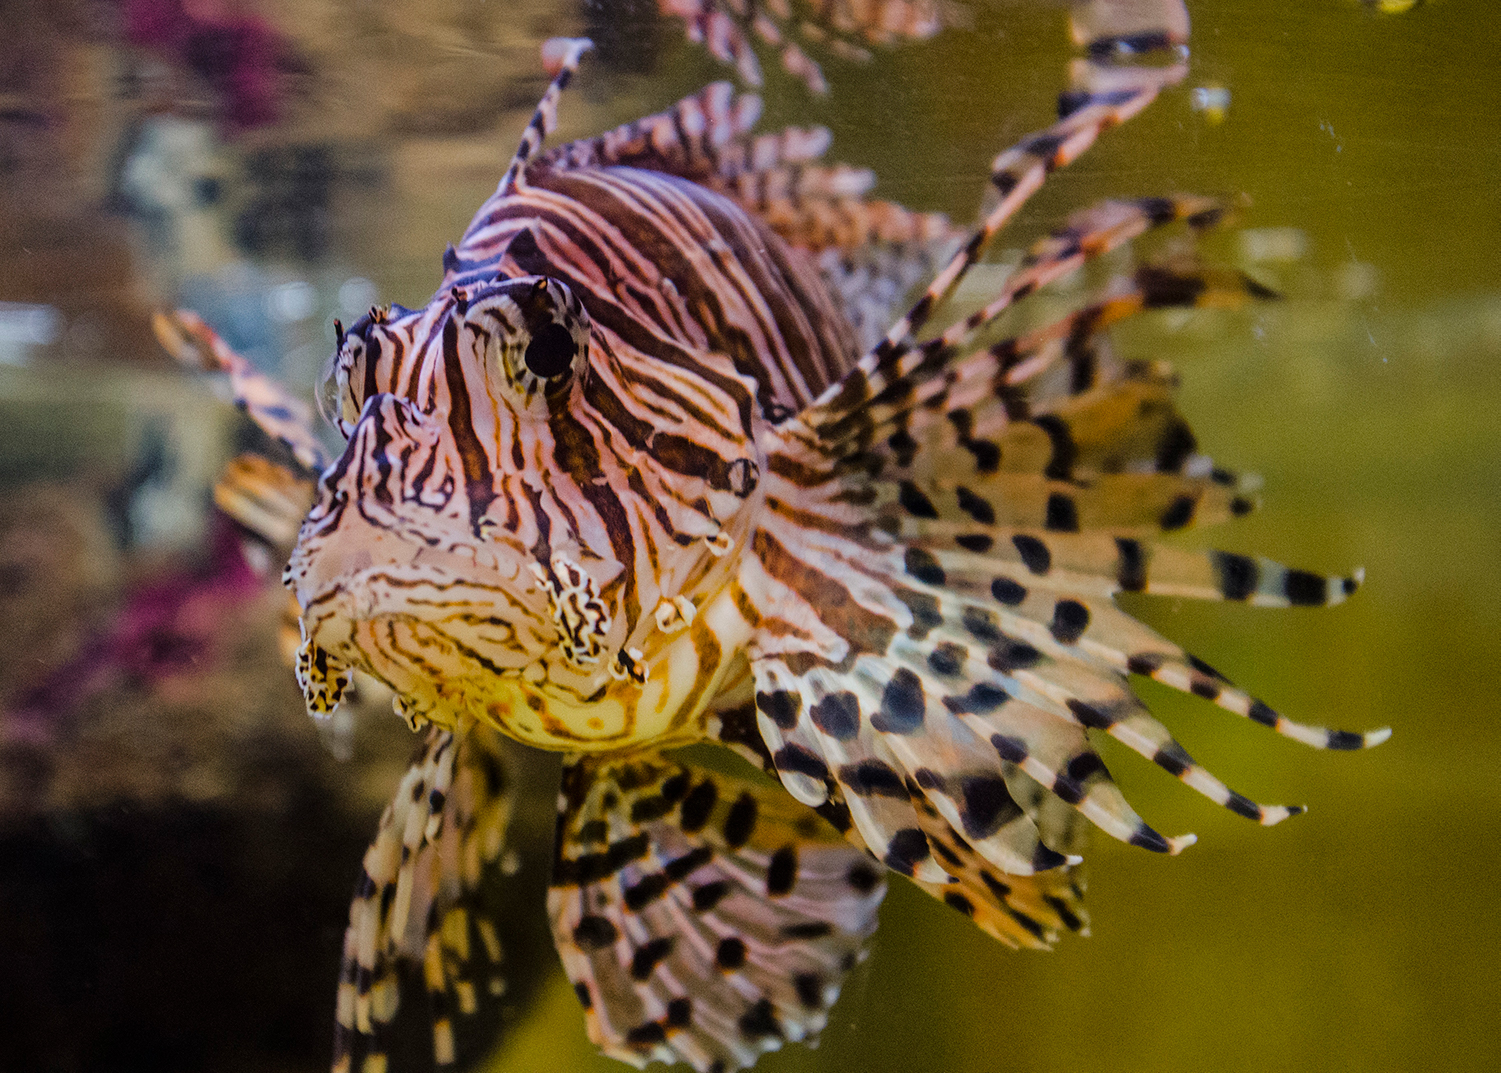 A new aquarium is coming to Anna Bay